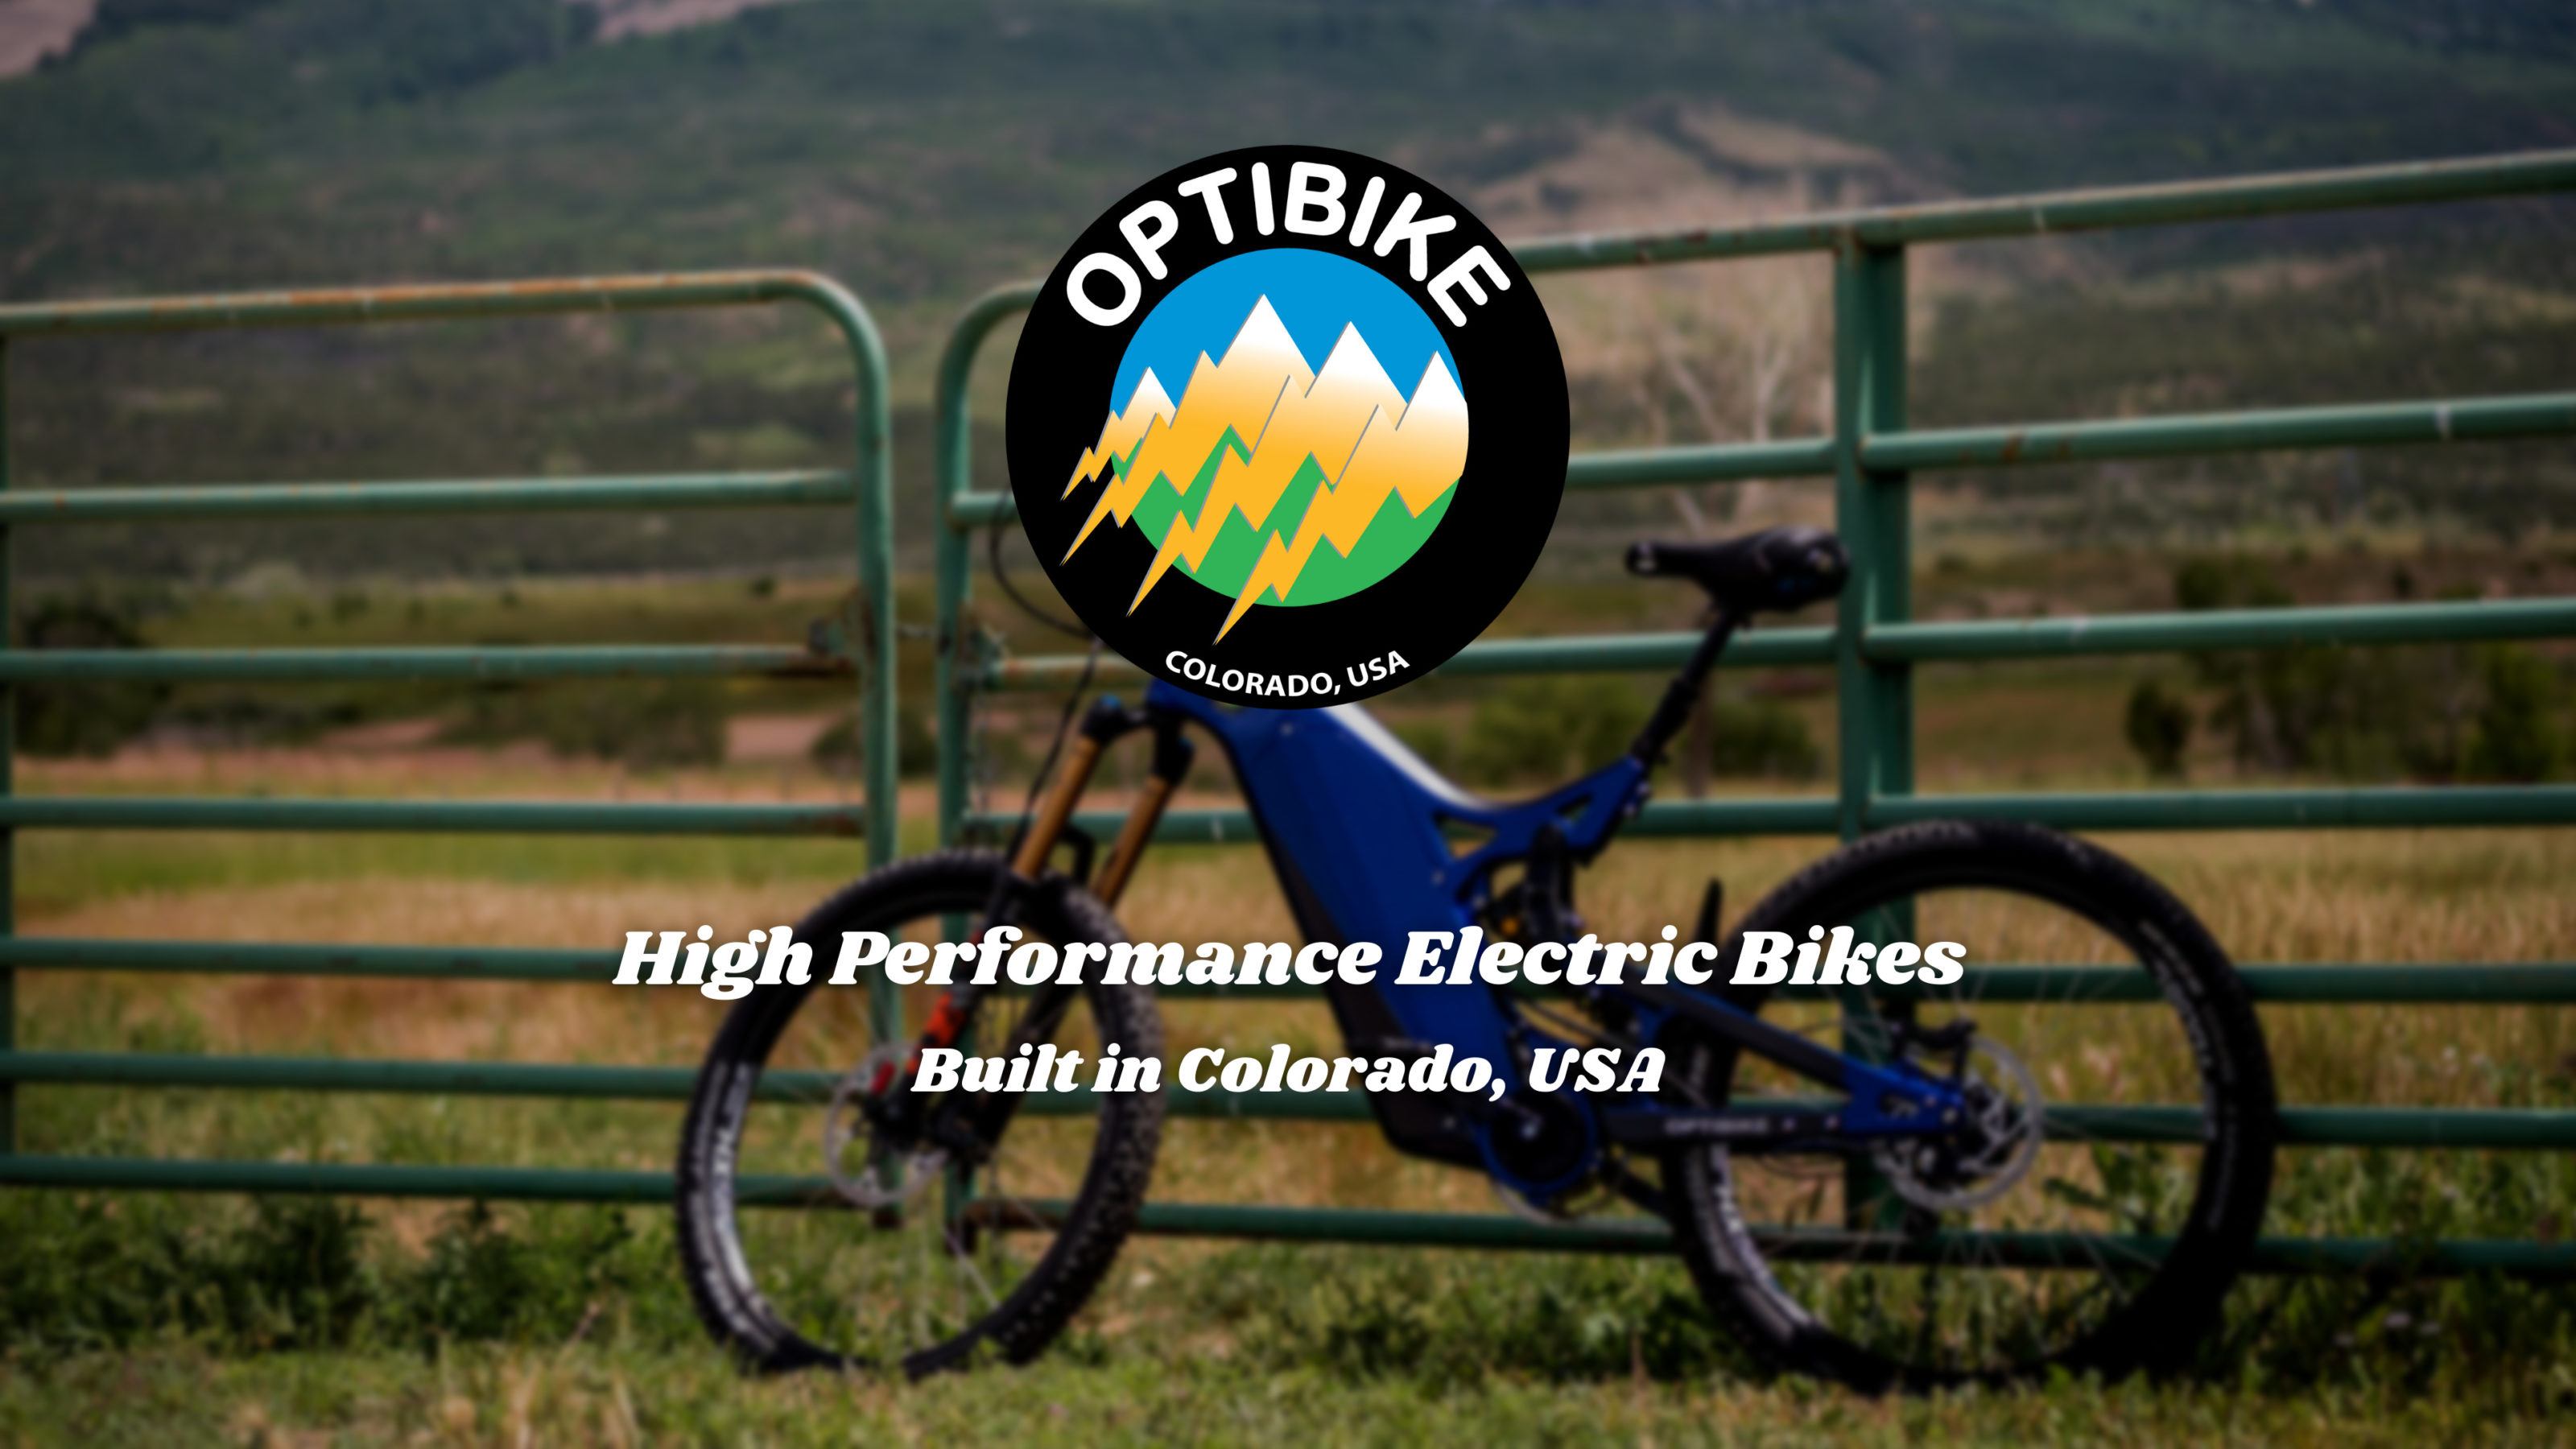 High Performance Electric Bikes, Built in Colorado, USA